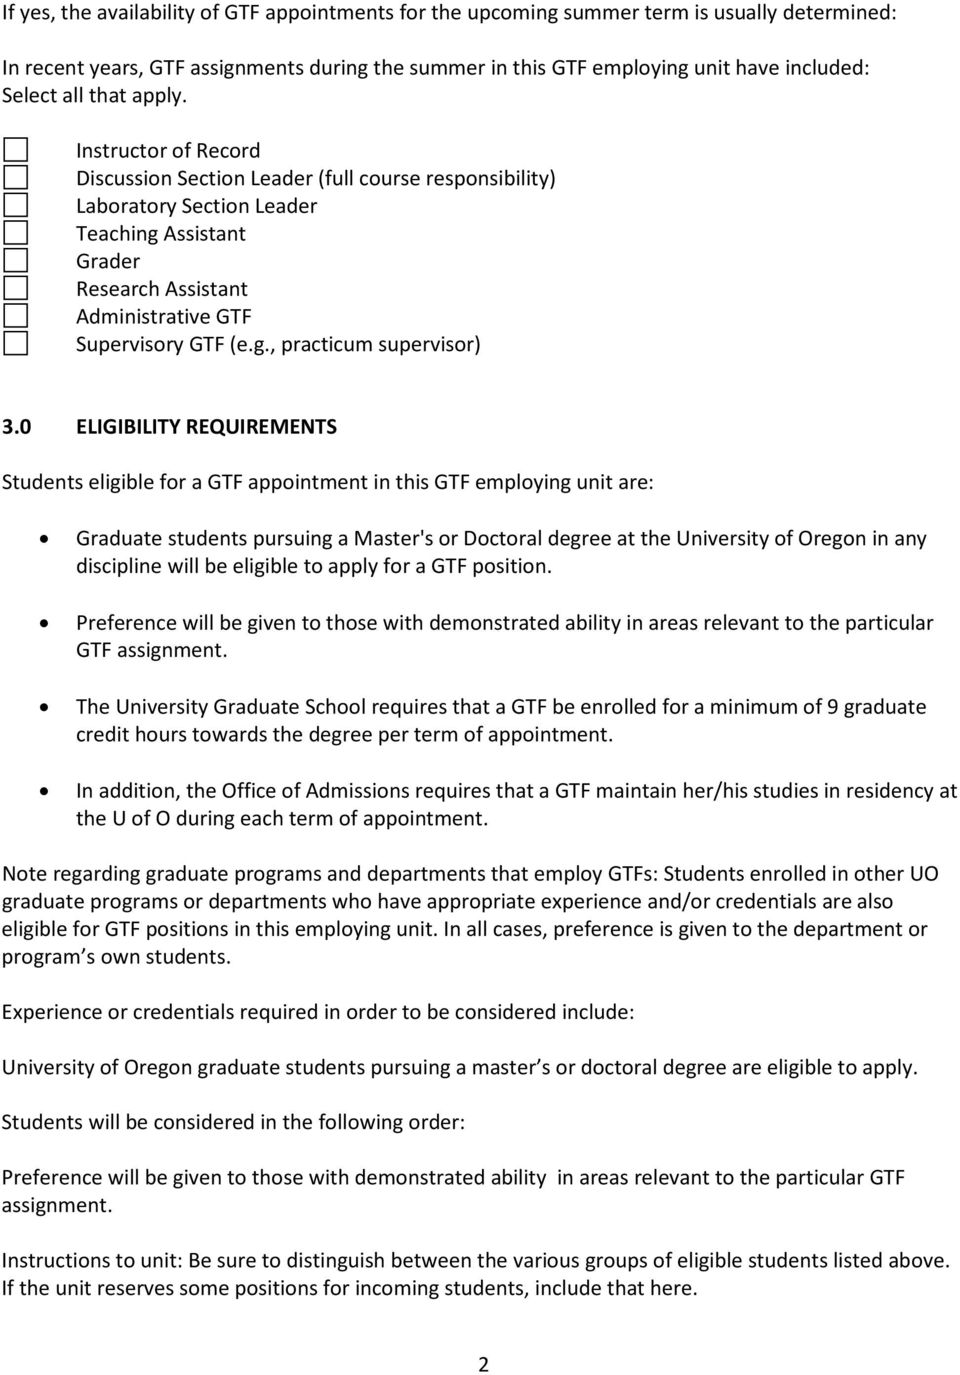 This document does not apply to work-study, hourly student employees